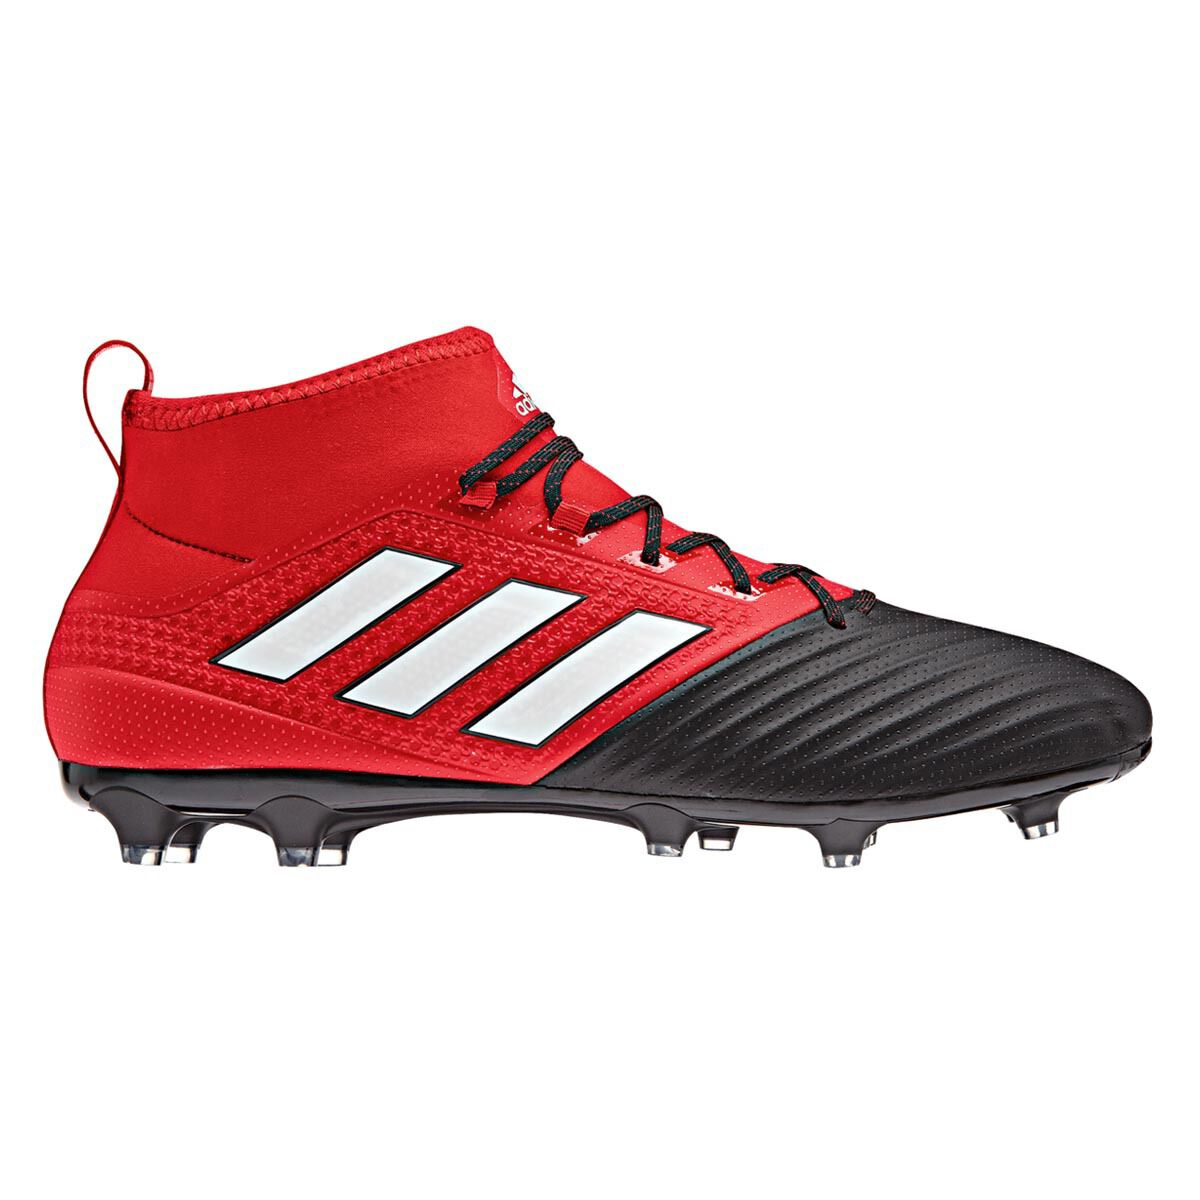 a7c155baf ... core black white red 50676 cdd0f germany adidas ace 17.2 primemesh mens  football boots red white us 7.5 adult red daba3 5e180 ...